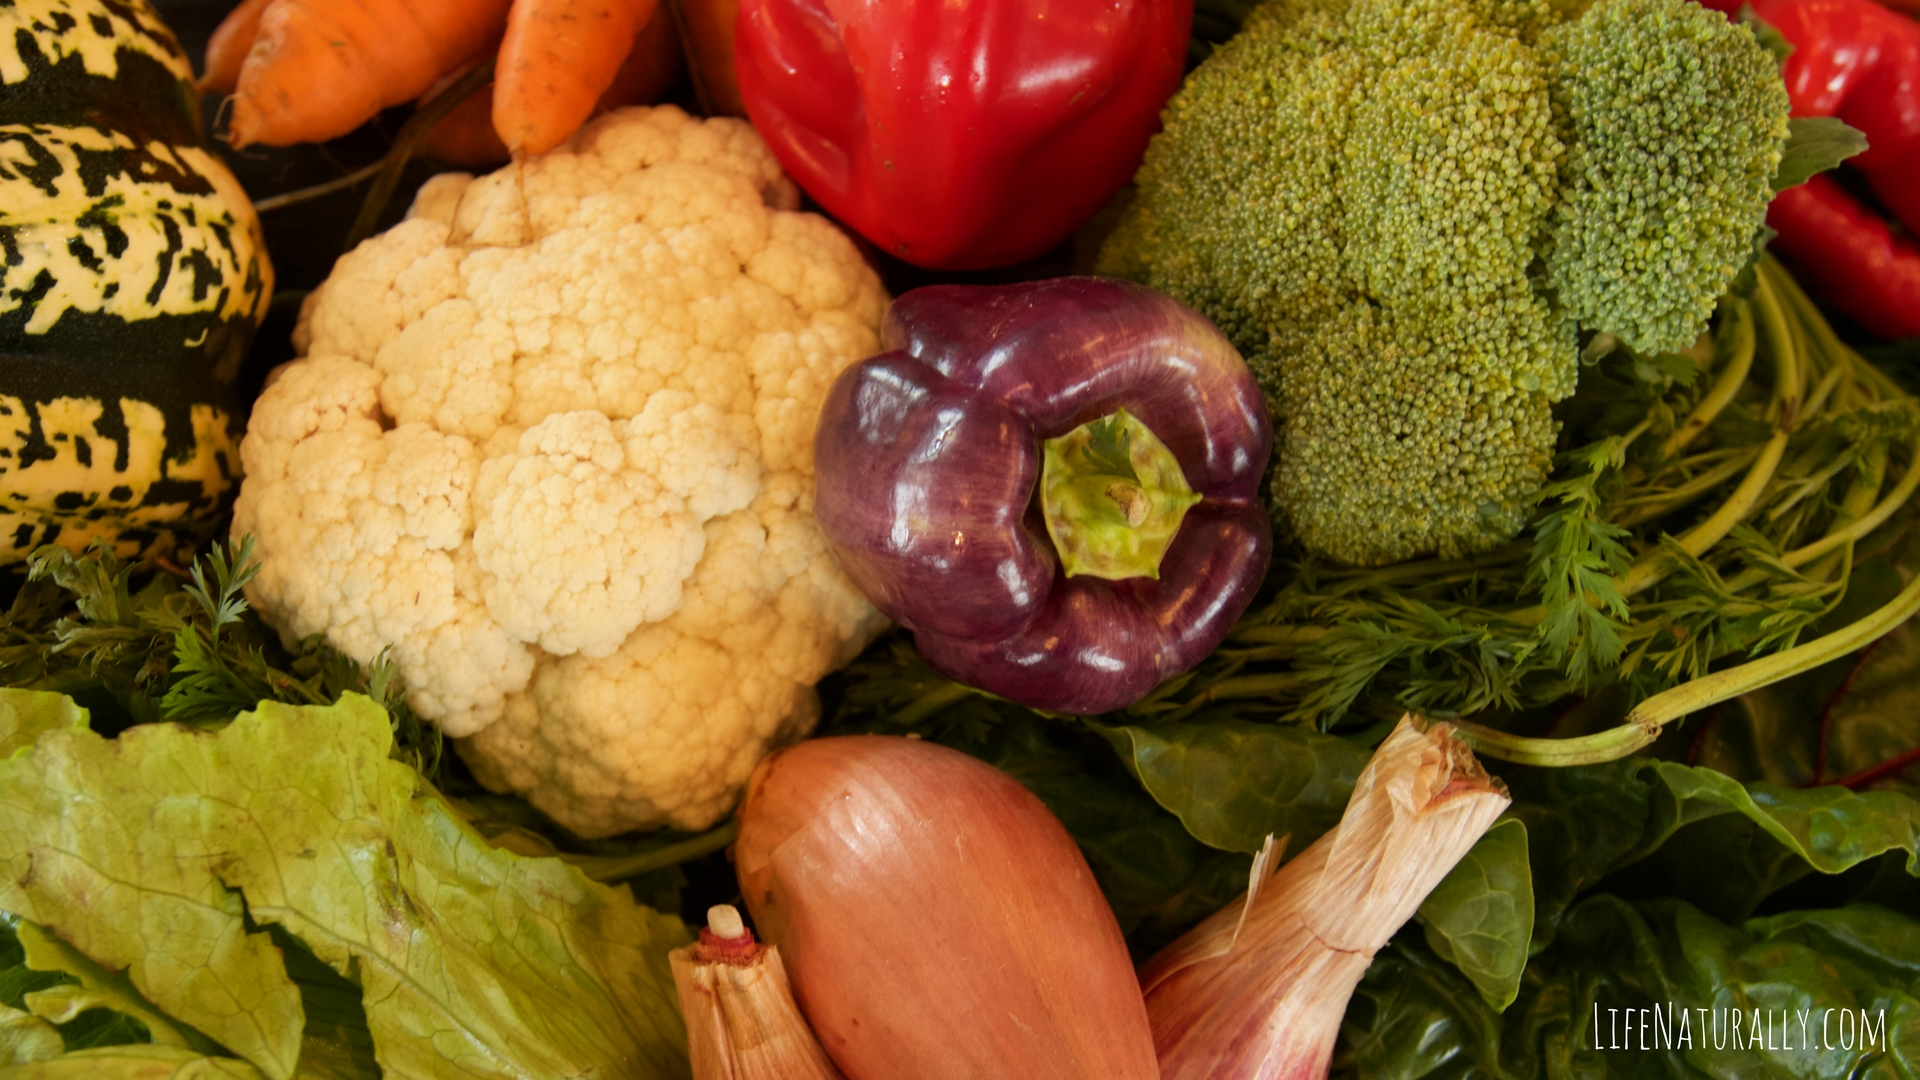 Community Supported Agriculture (CSA) Weekly Basket